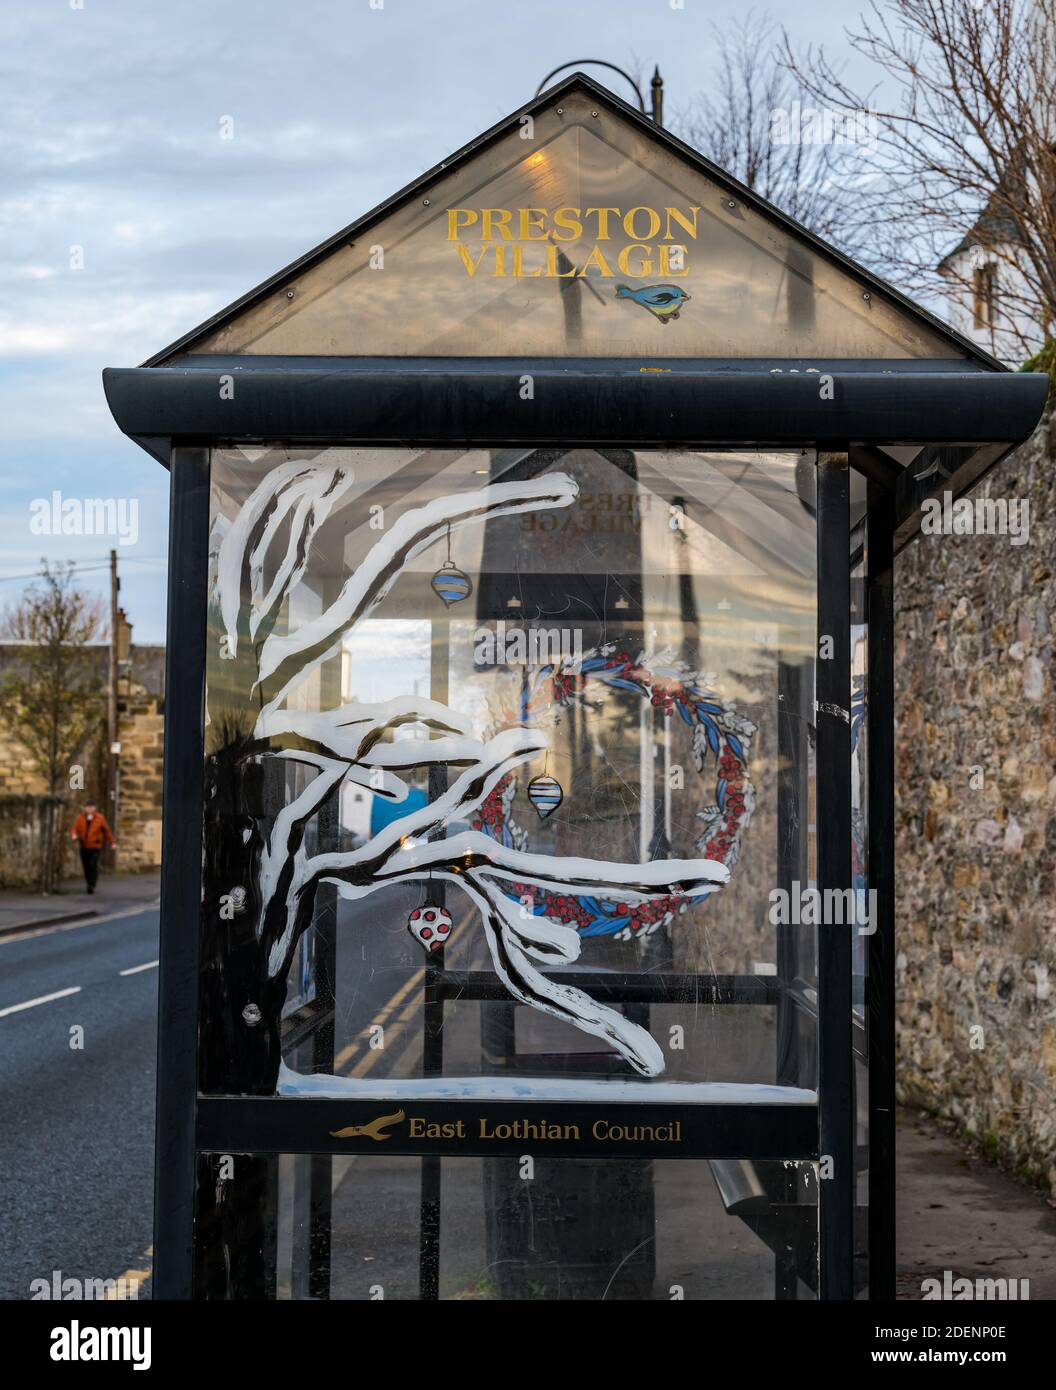 Prestonpans, East Lothian, Scotland, United Kingdom, 1st December 2020. Christmas Lights: Residents of the town have gone to town with Christmas decorations this year. A bus stop shelter with Christmas decorations Stock Photo